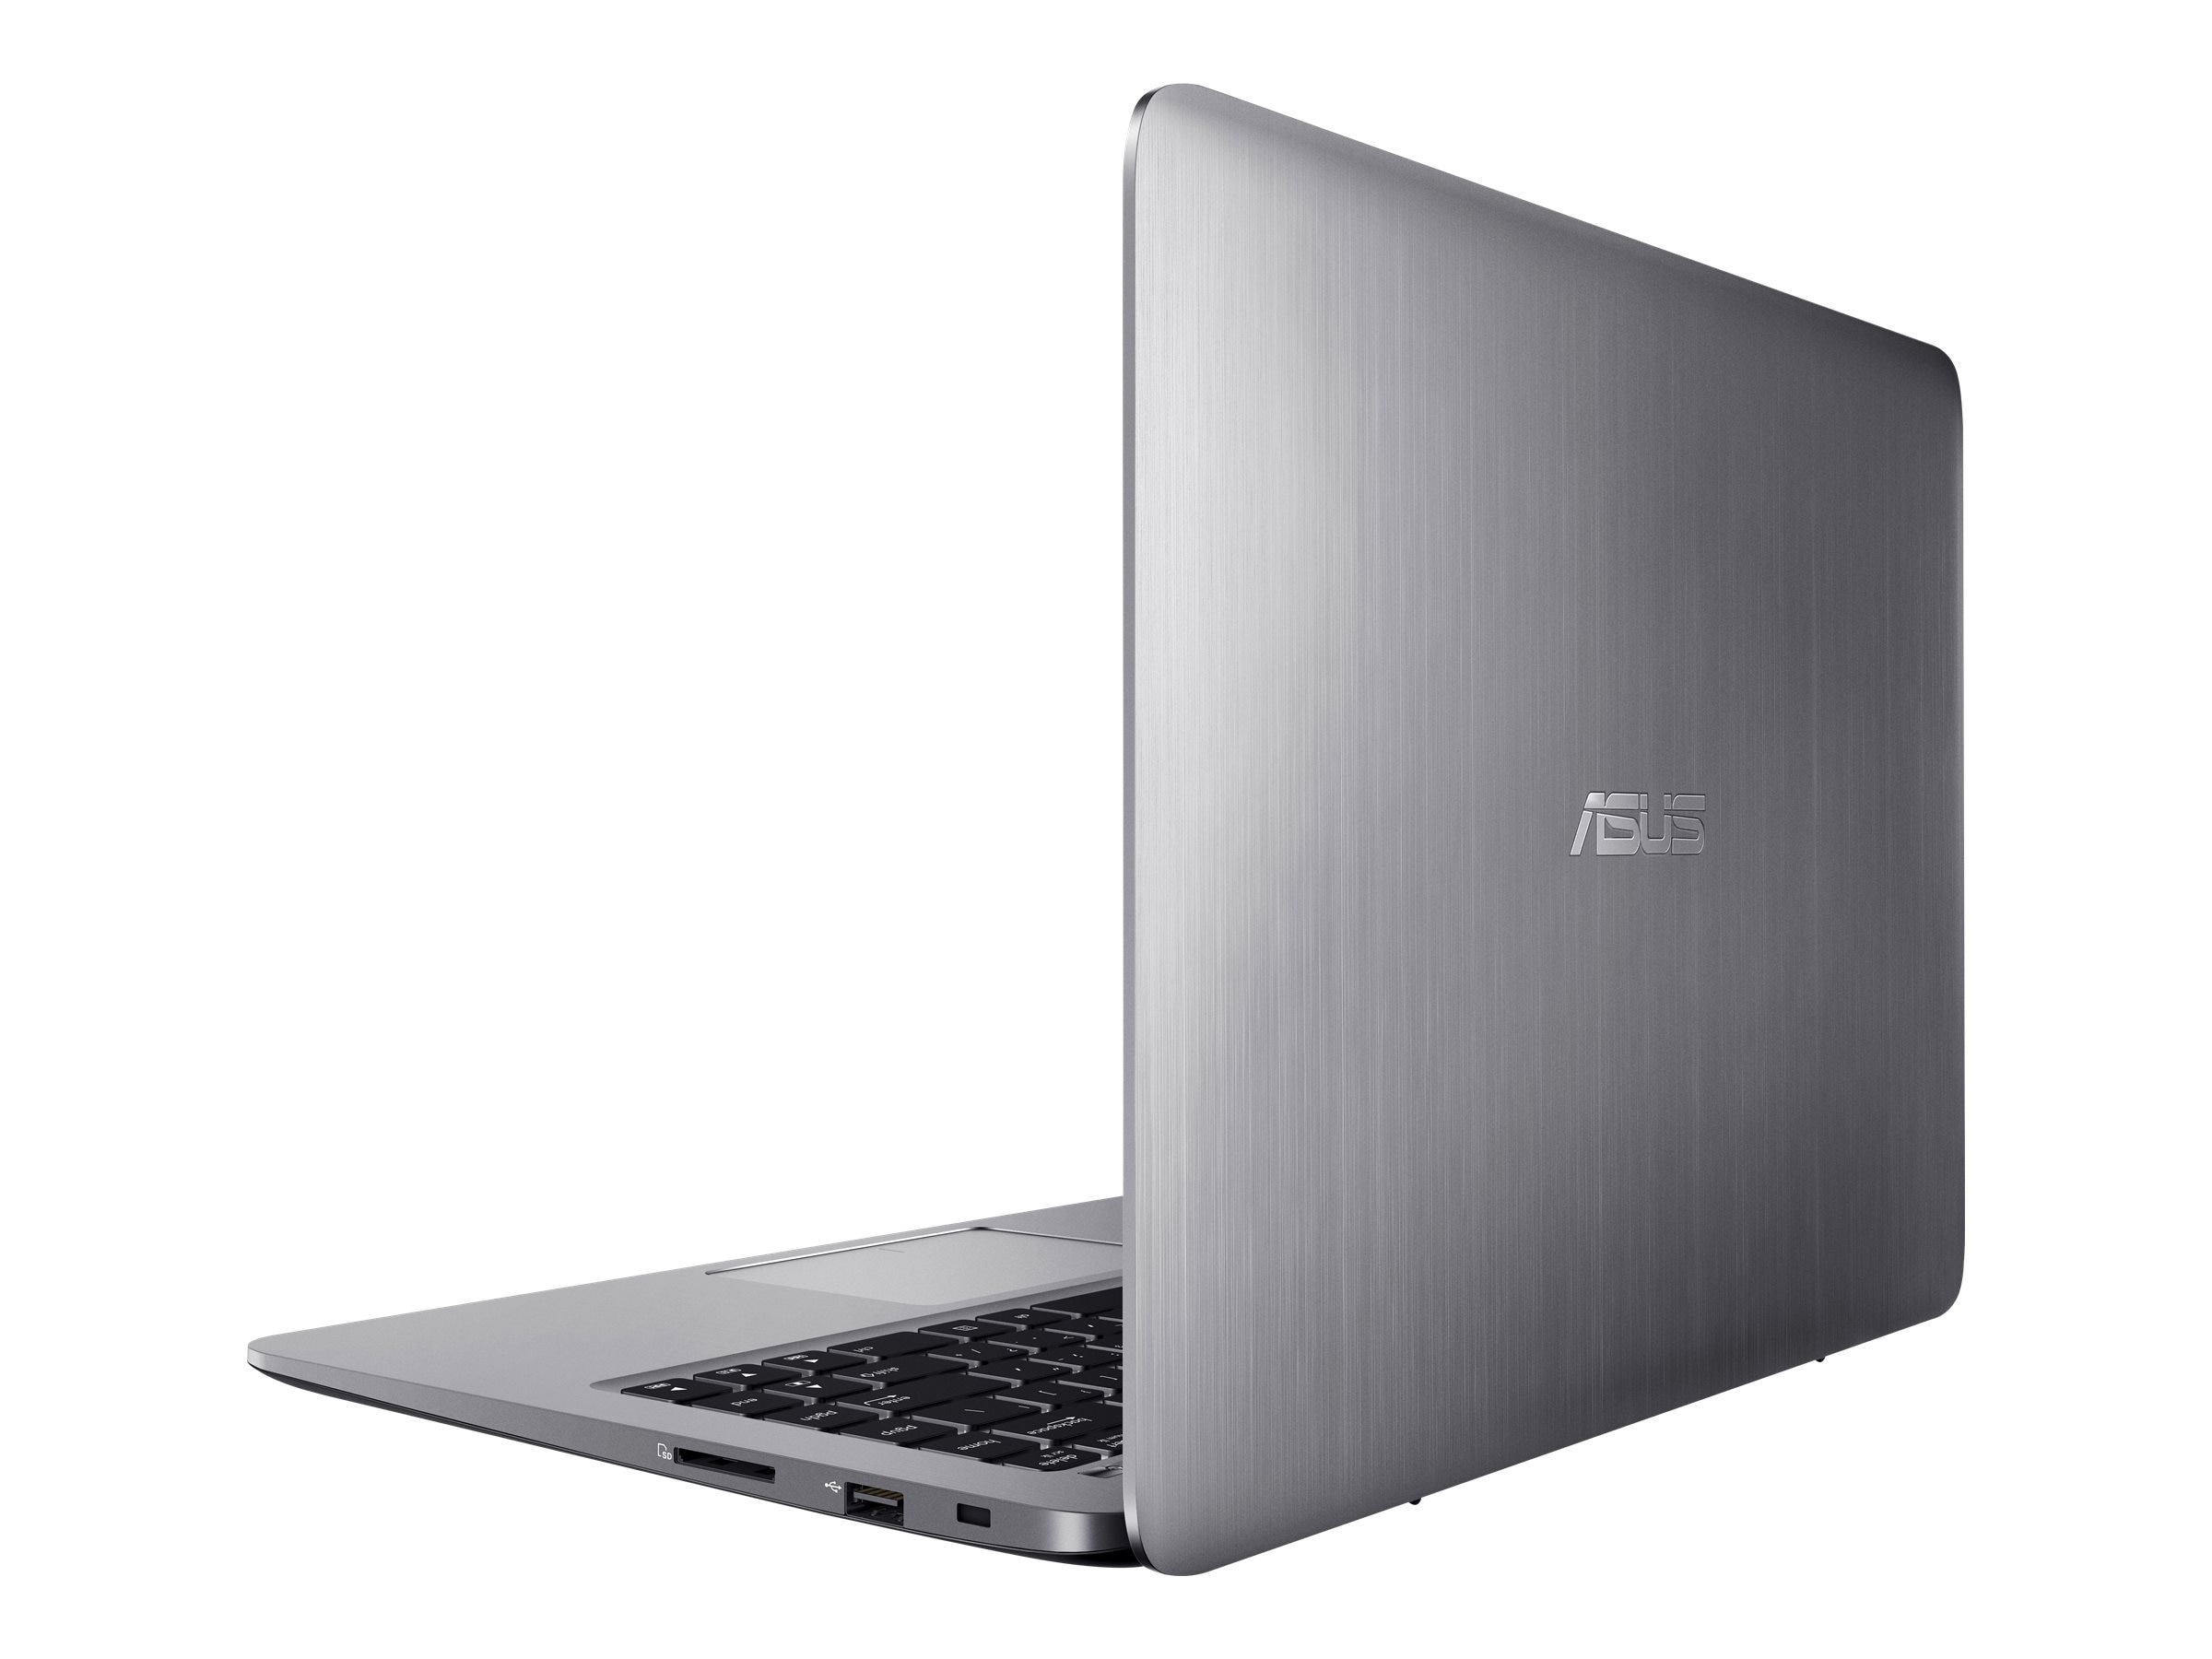 Asus Notebook PC Celeron N3700 1.6GHz 4GB 128GB 14 FHD, 90NL0061-M01320